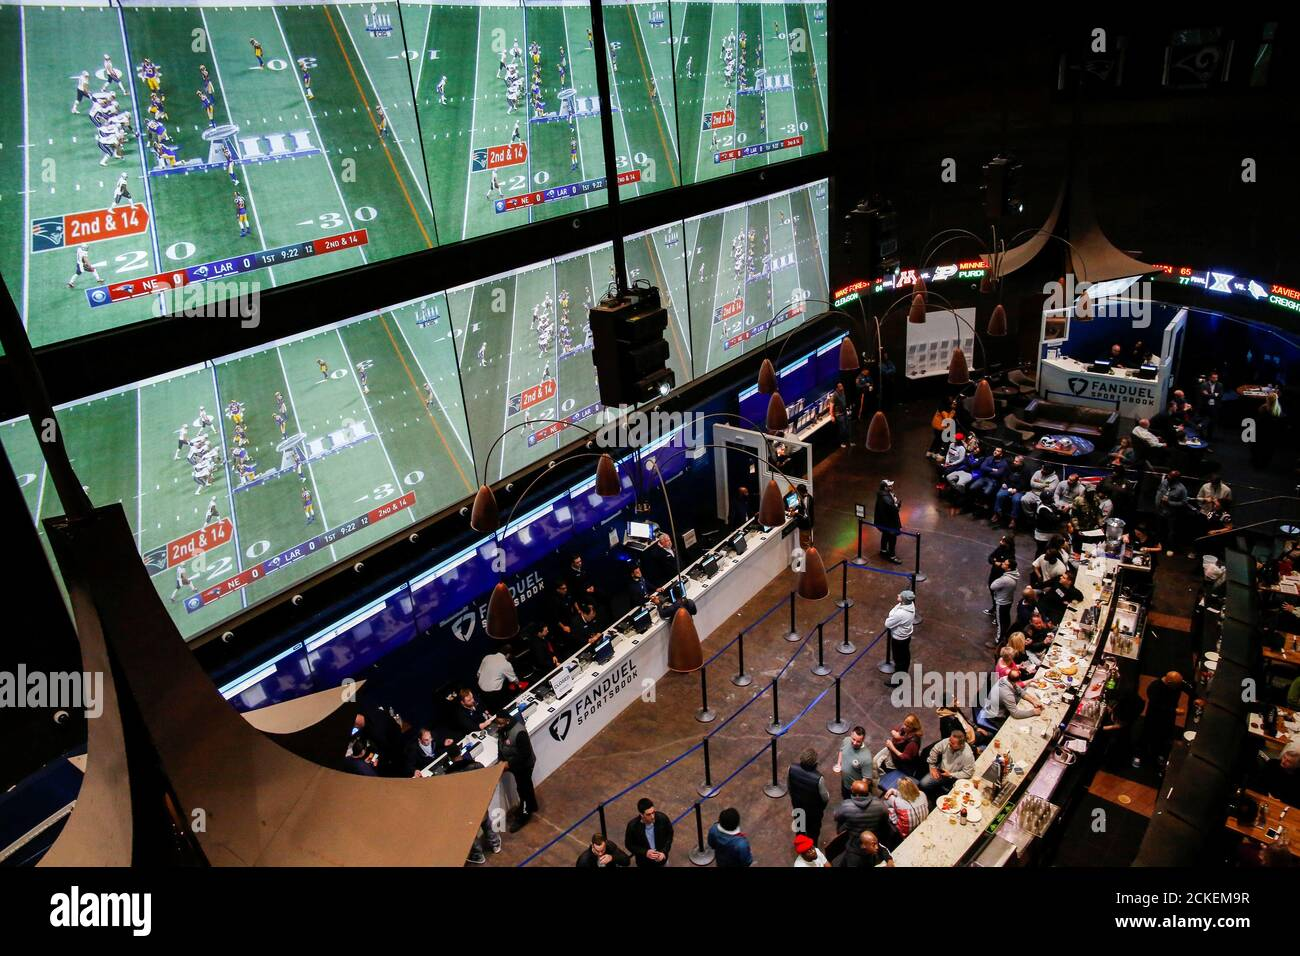 People make their bets at the FANDUEL sportsbook during the Super Bowl LIII in East Rutherford, New Jersey, U.S., February 3, 2019. REUTERS/Eduardo Munoz Stock Photo